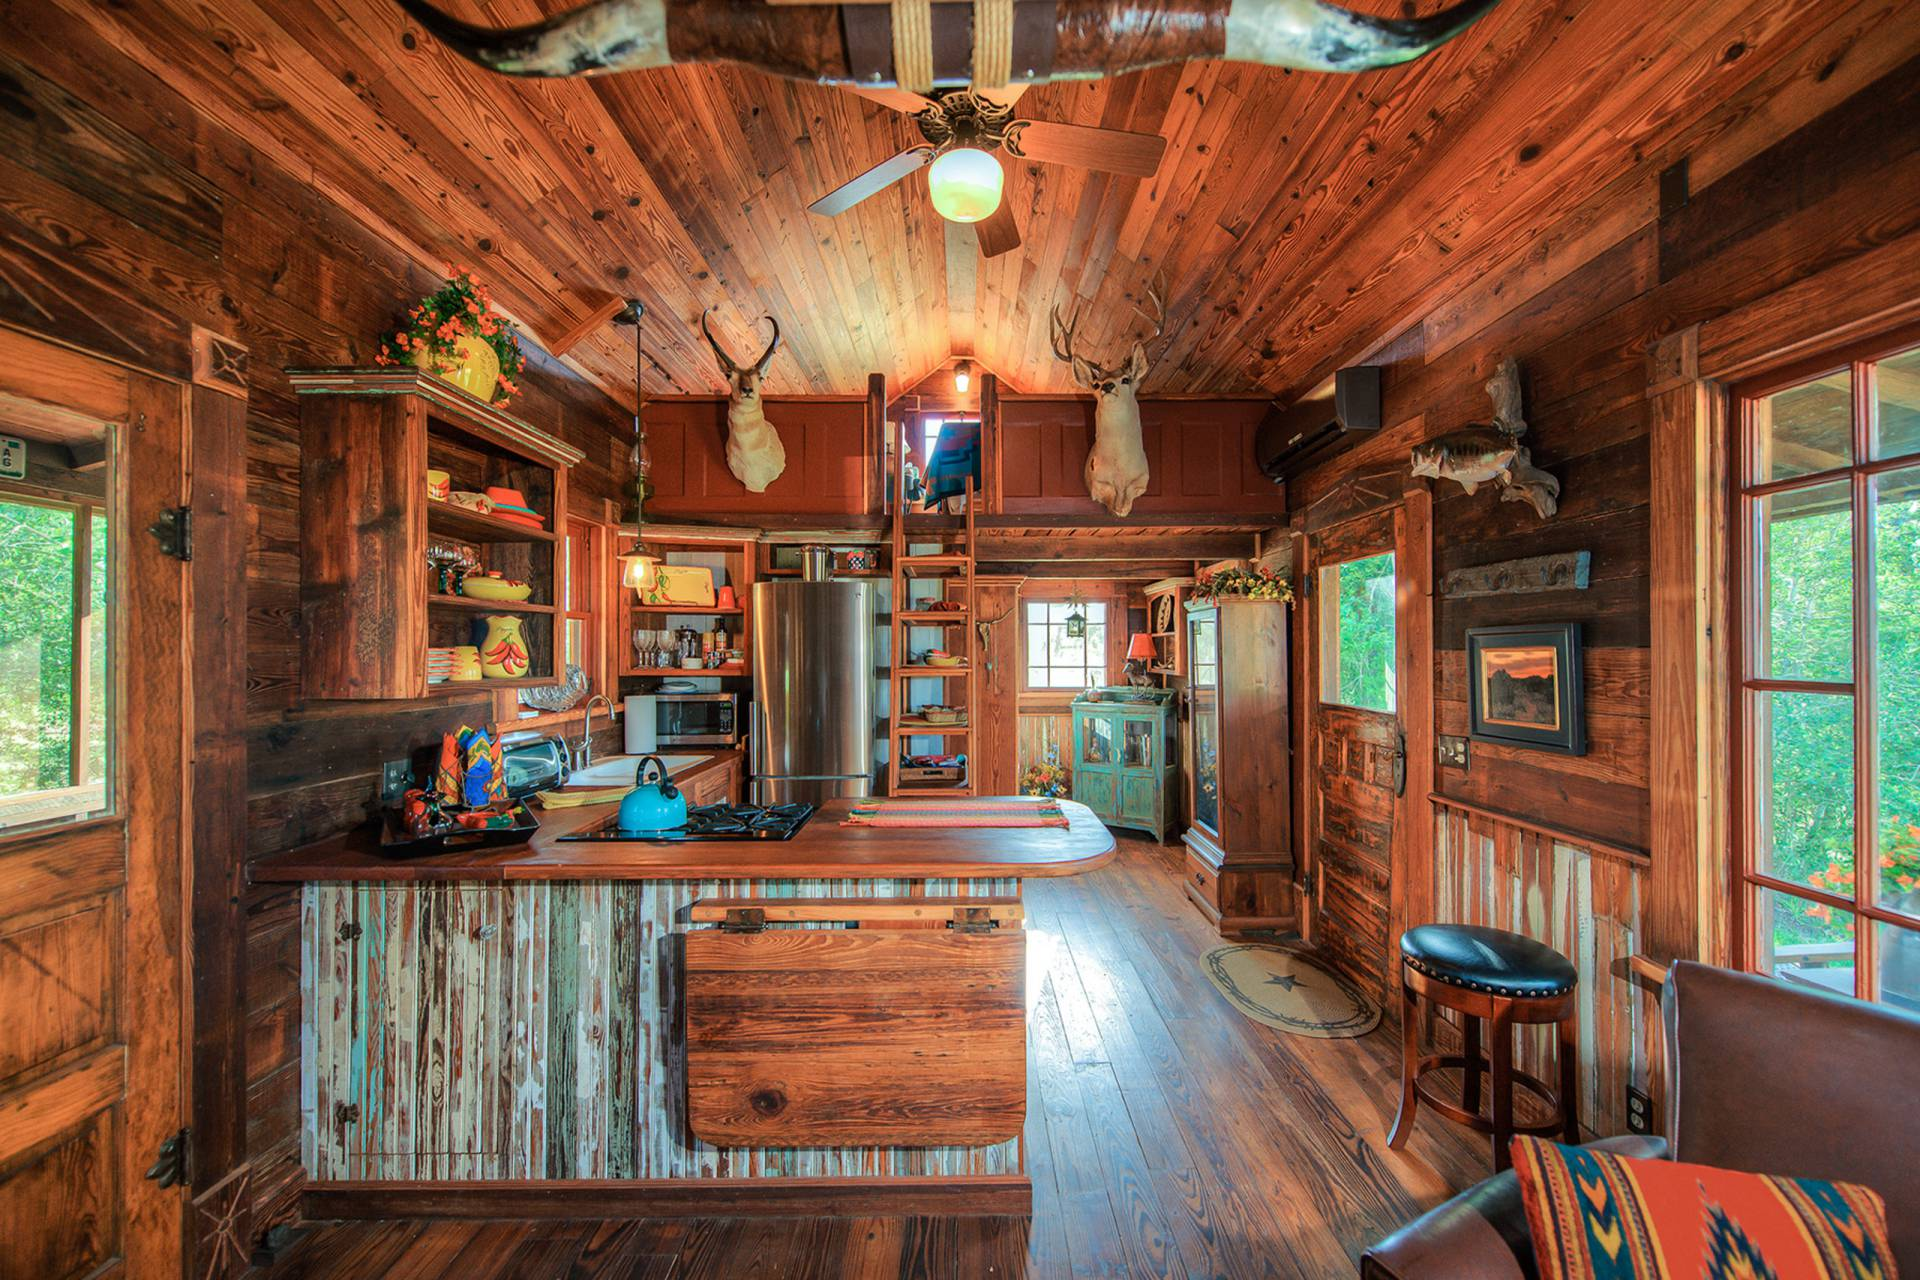 Superieur Published February 29, 2016 At 1920 × 1280 In The Cowboy Cabin | Tiny Texas  Houses